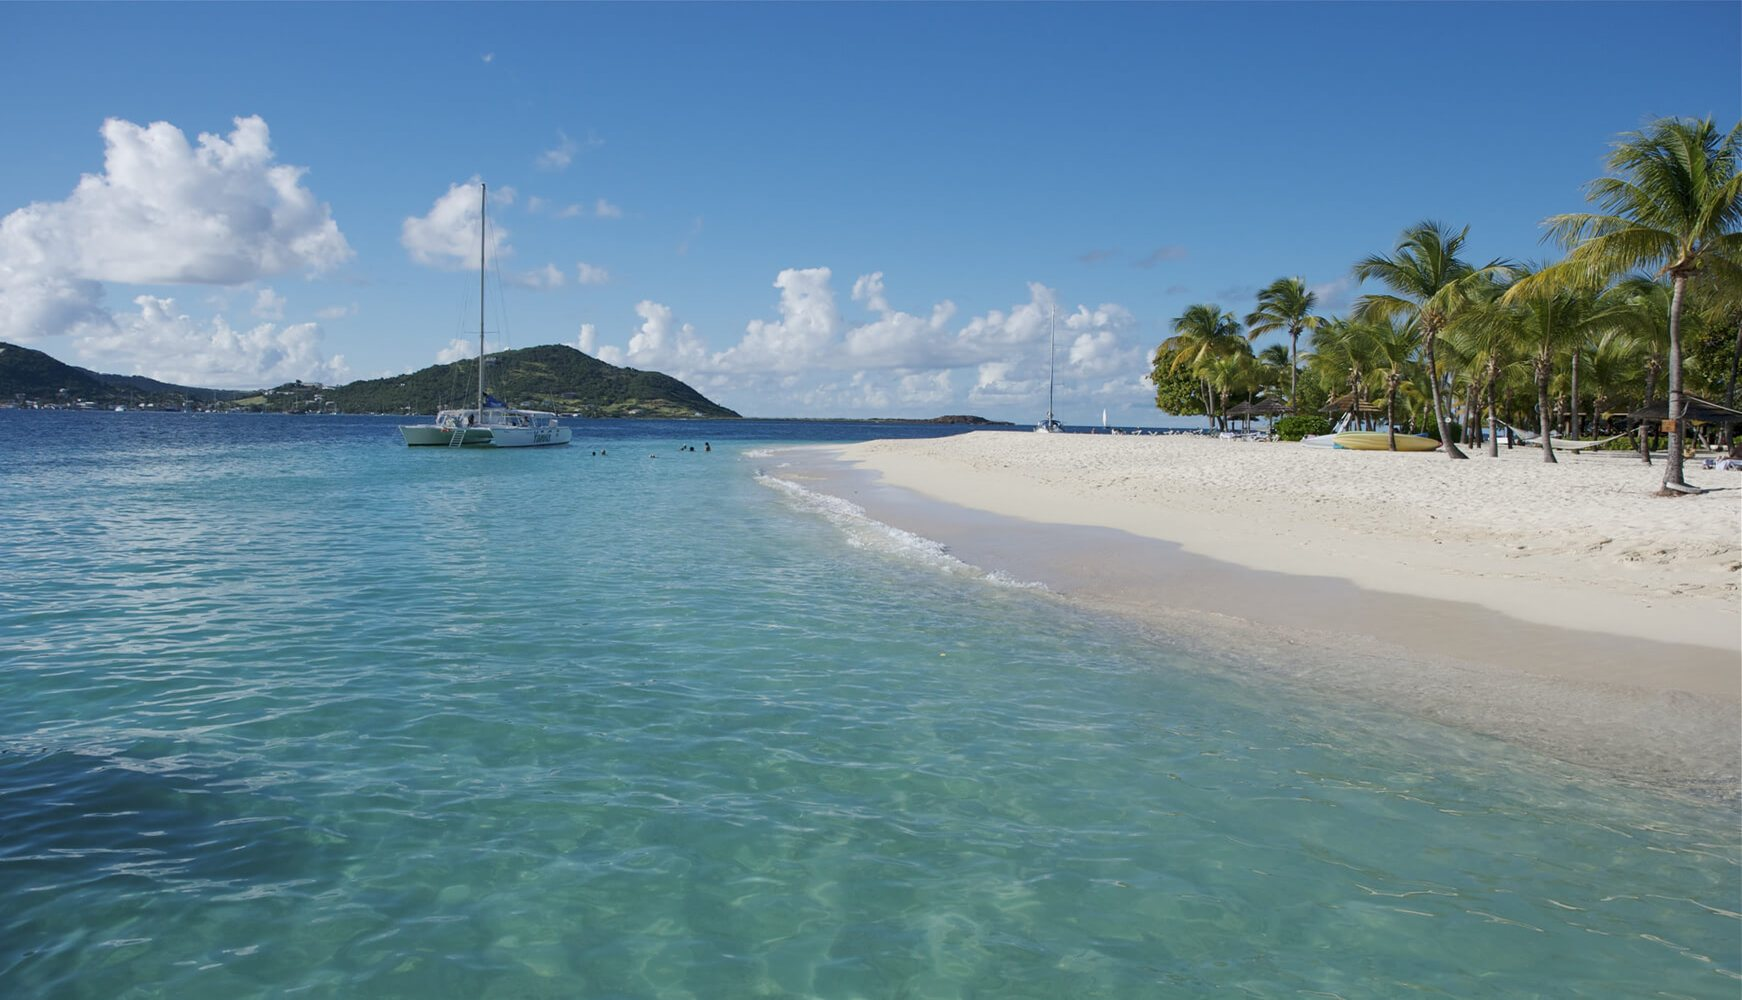 Saint Vincent et les Grenadines